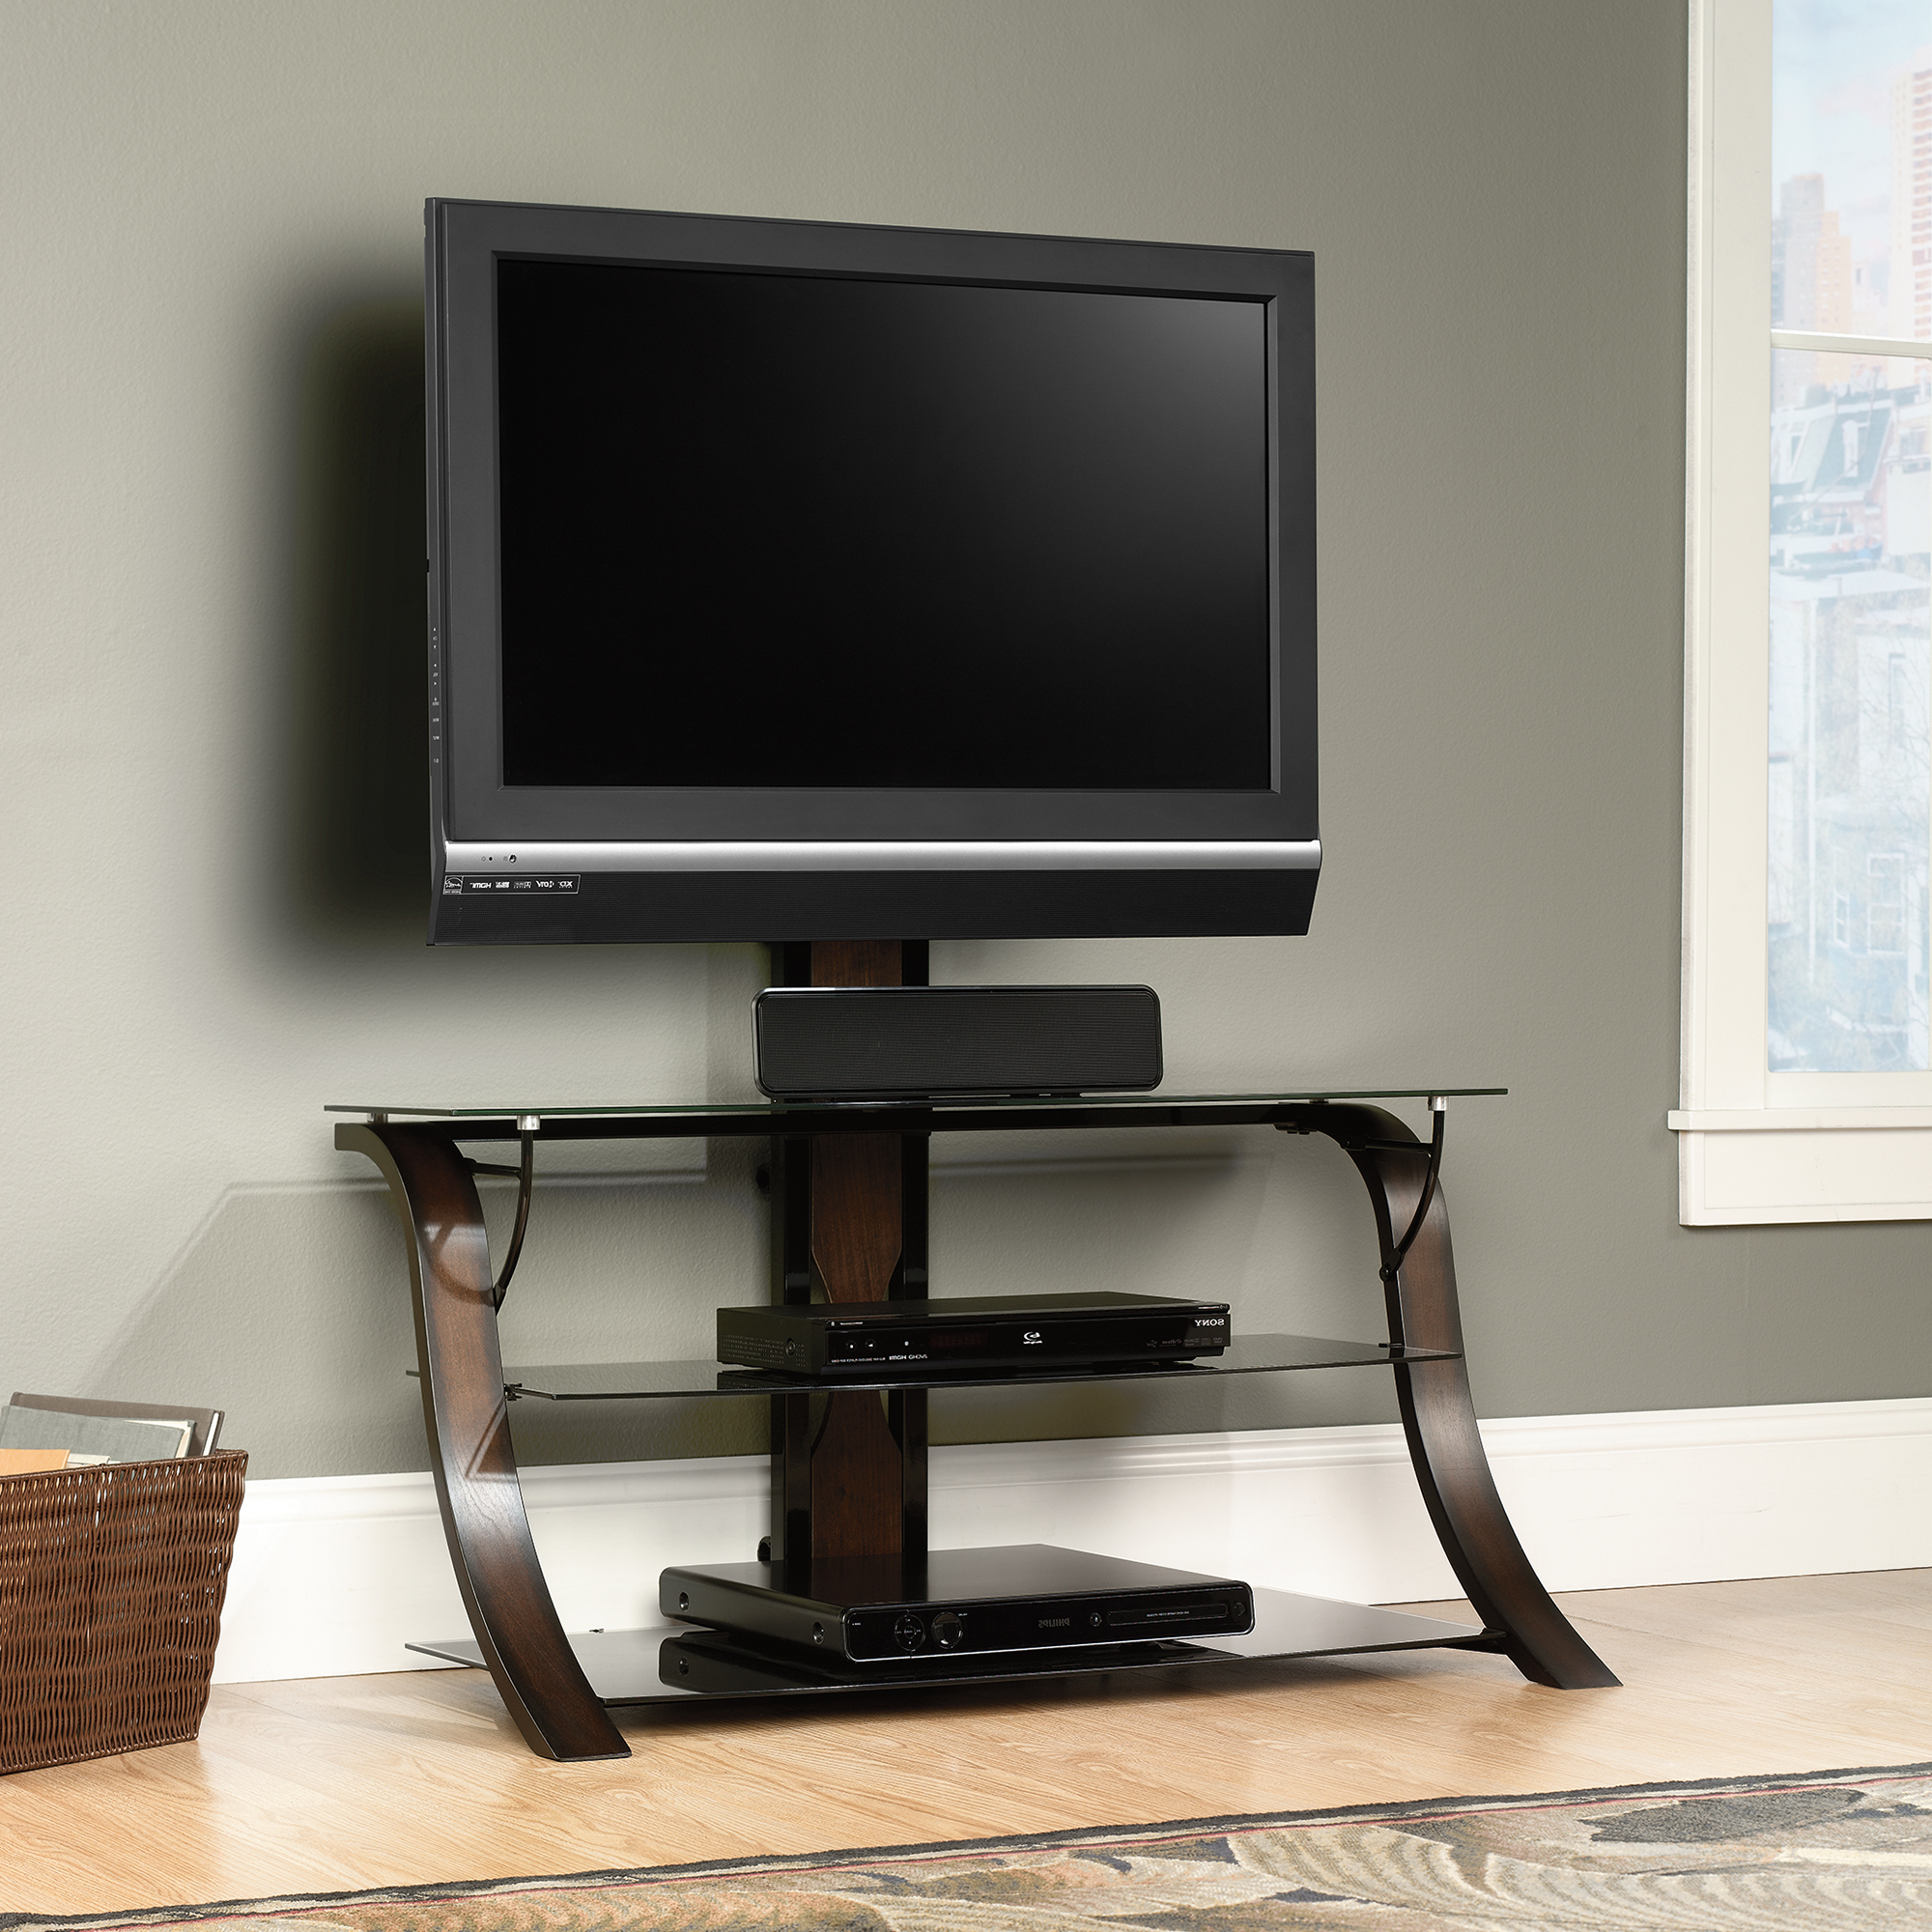 Sauder Select Veer  Mounted Tv Stand Cherry Finish (413906) – Sauder Regarding Famous Tv With Stands (Gallery 3 of 20)